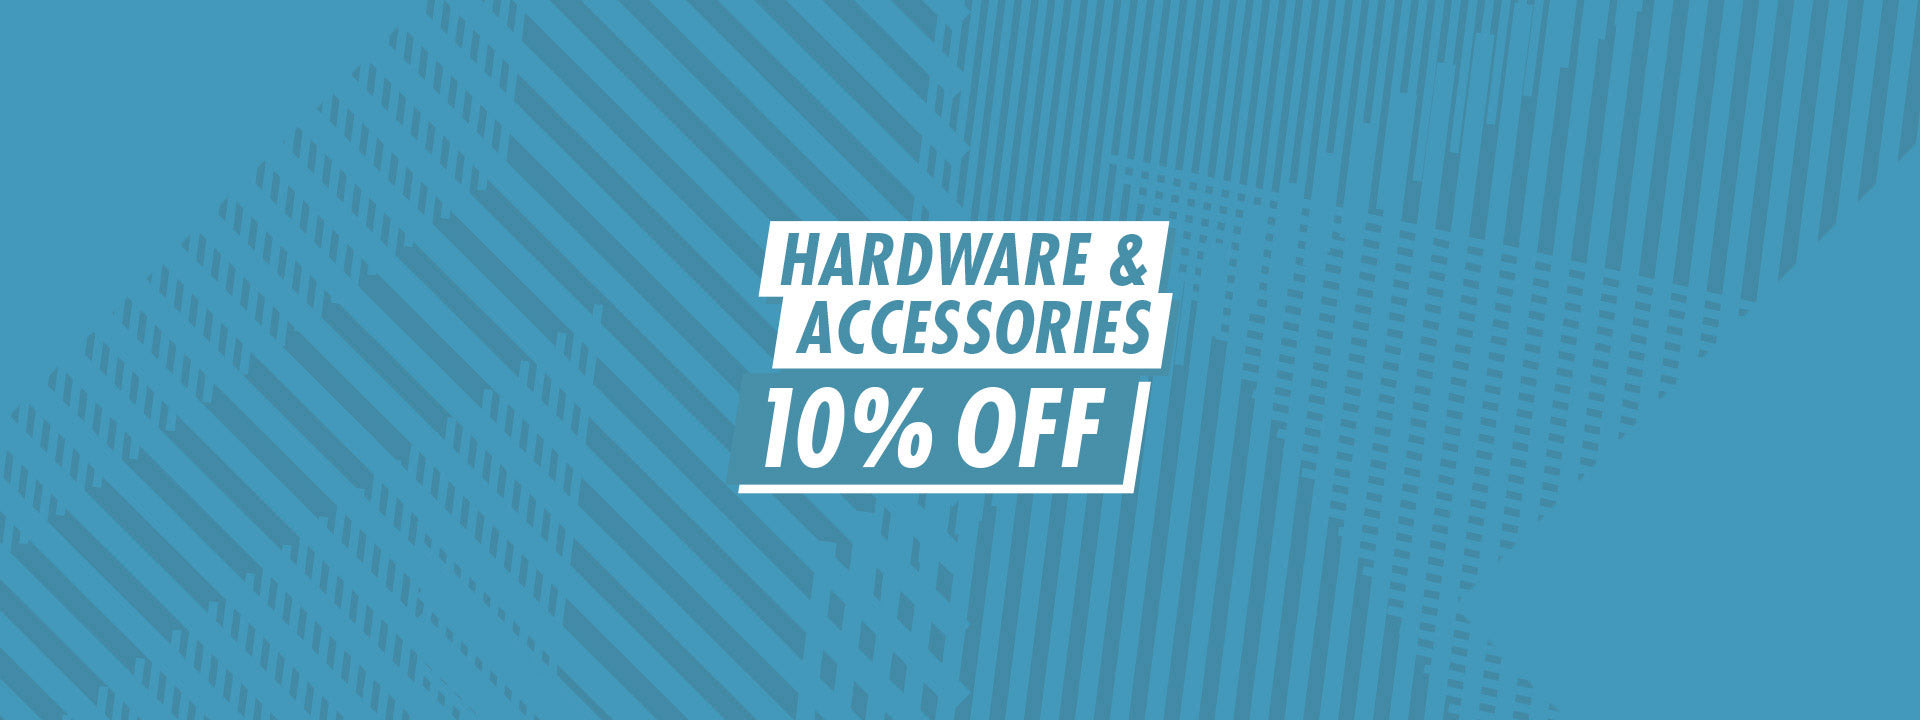 Surf Hardware & Accessories Sale